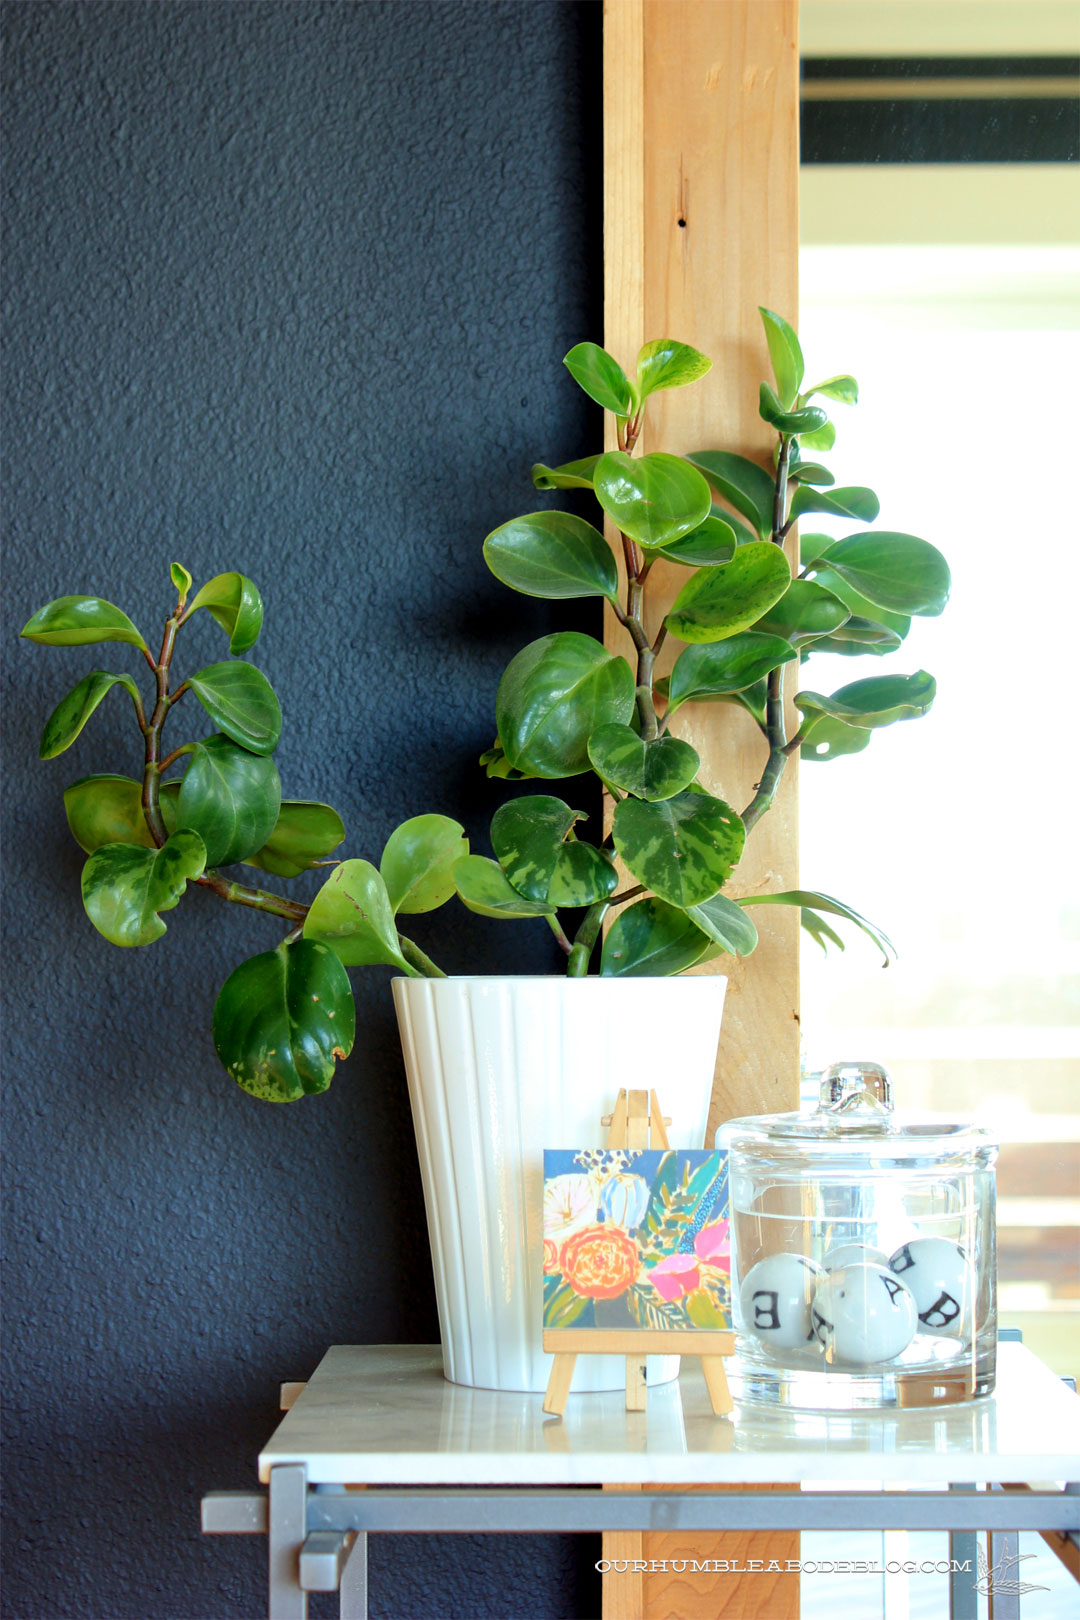 Peperomia-Plant-in-Master-Bedroom